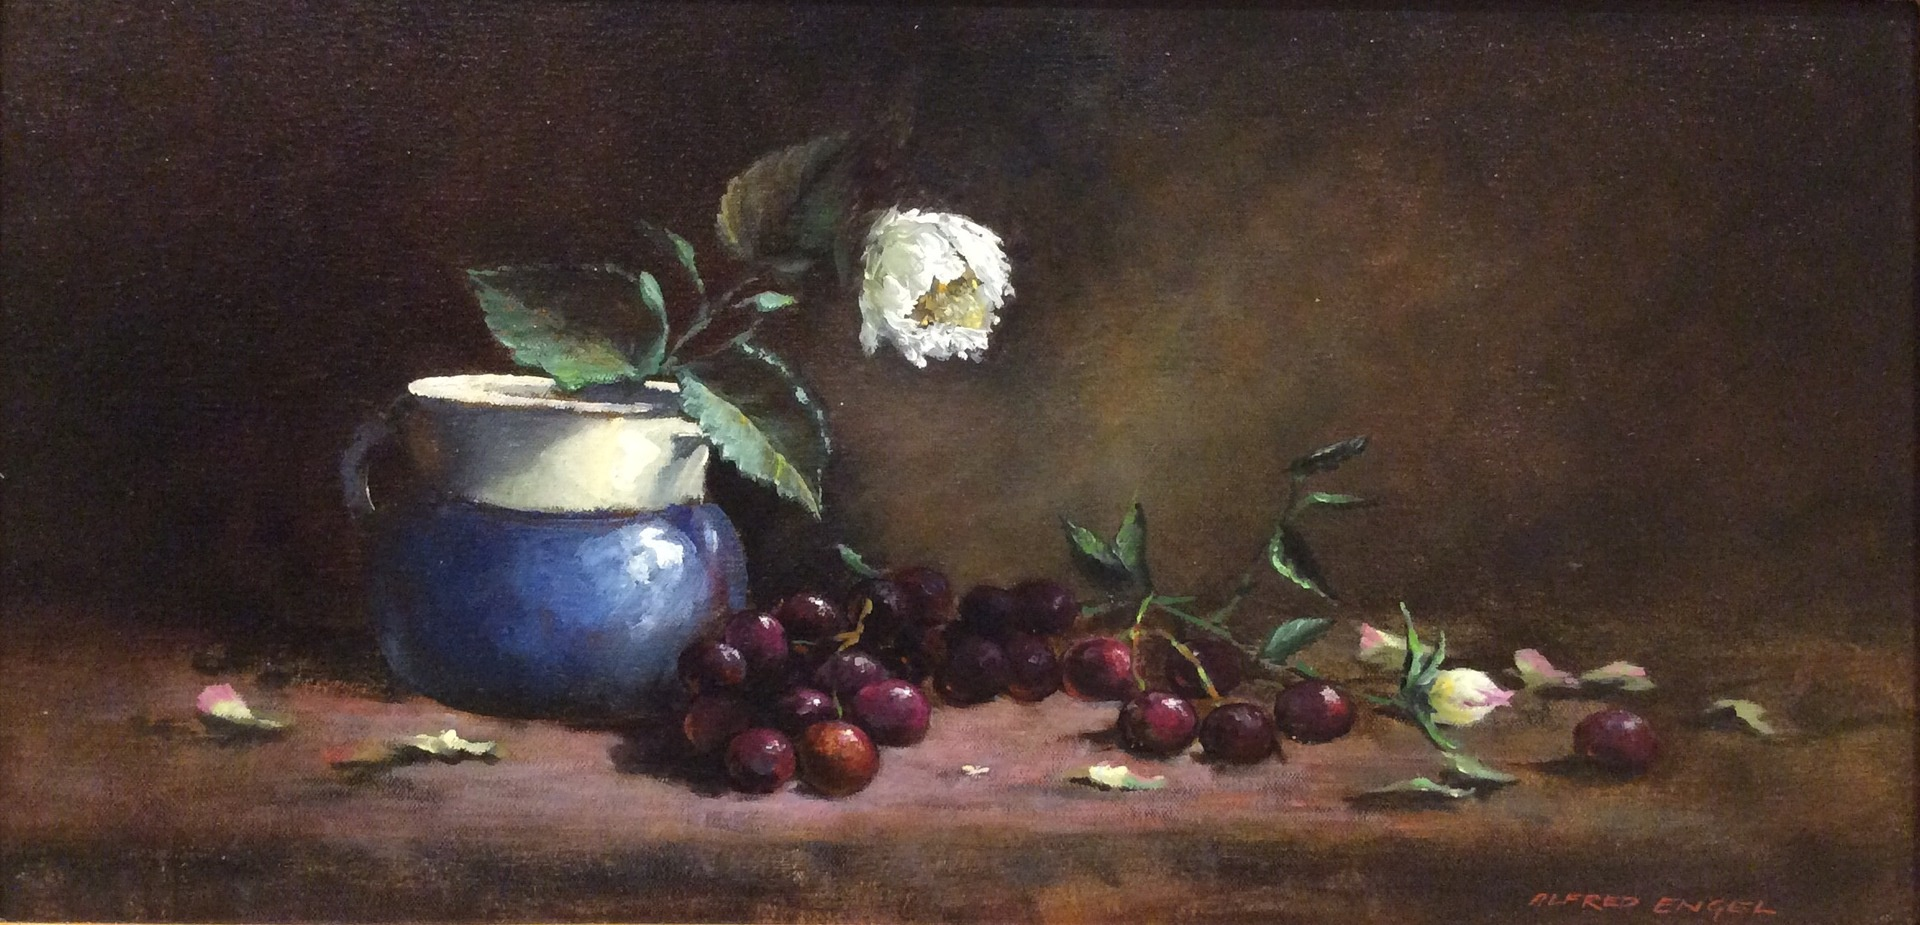 Dark Grapes Oil Painting by Alfred Engel 670mm x 410mm